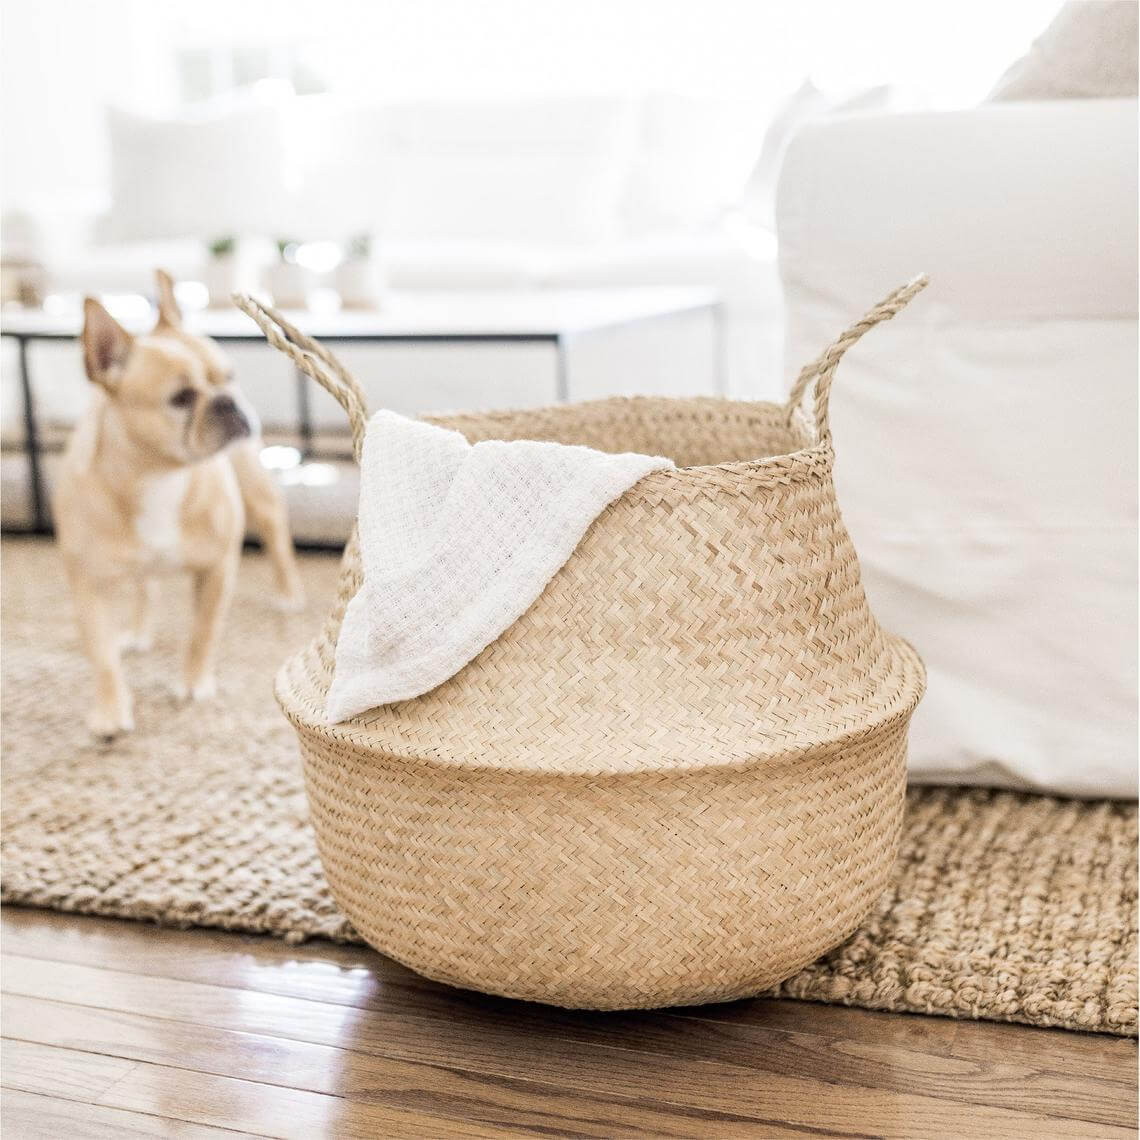 Shades of Beige Catchall Woven Seagrass Basket